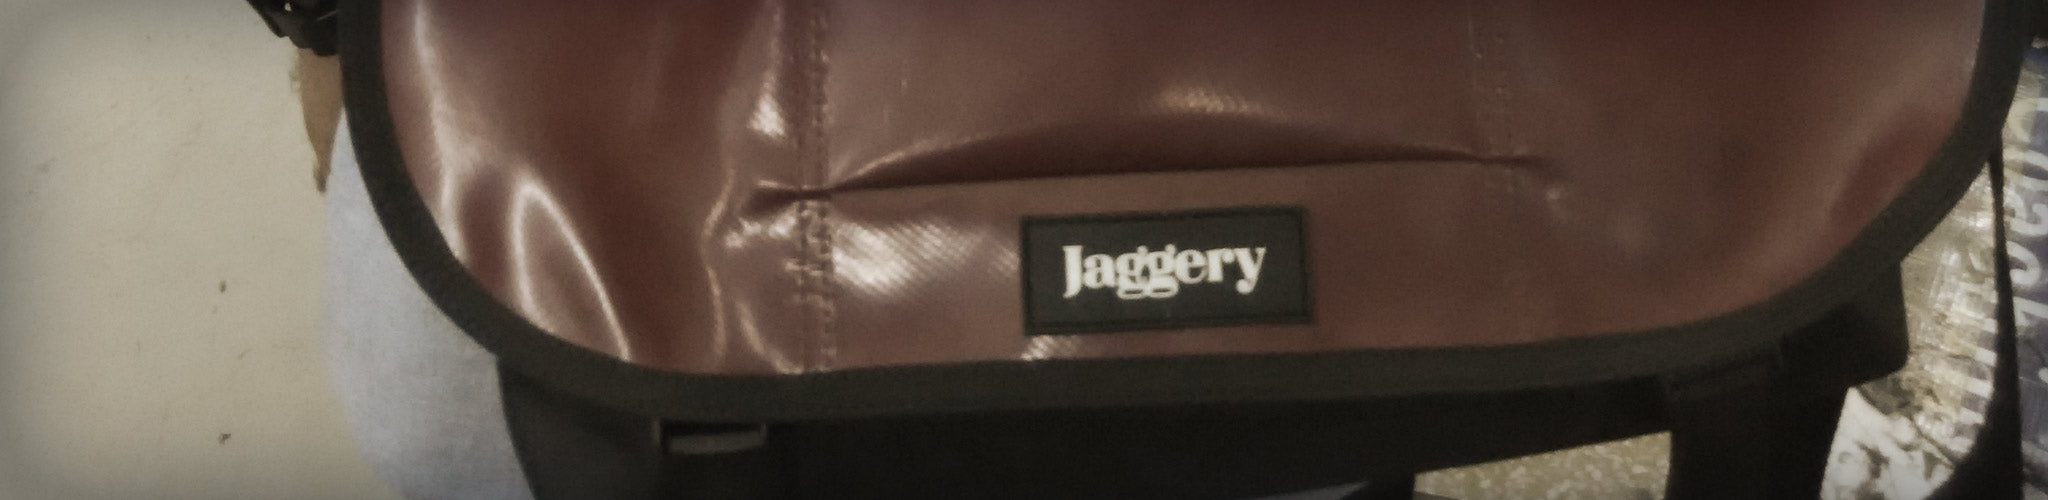 Jaggery Bags - Team